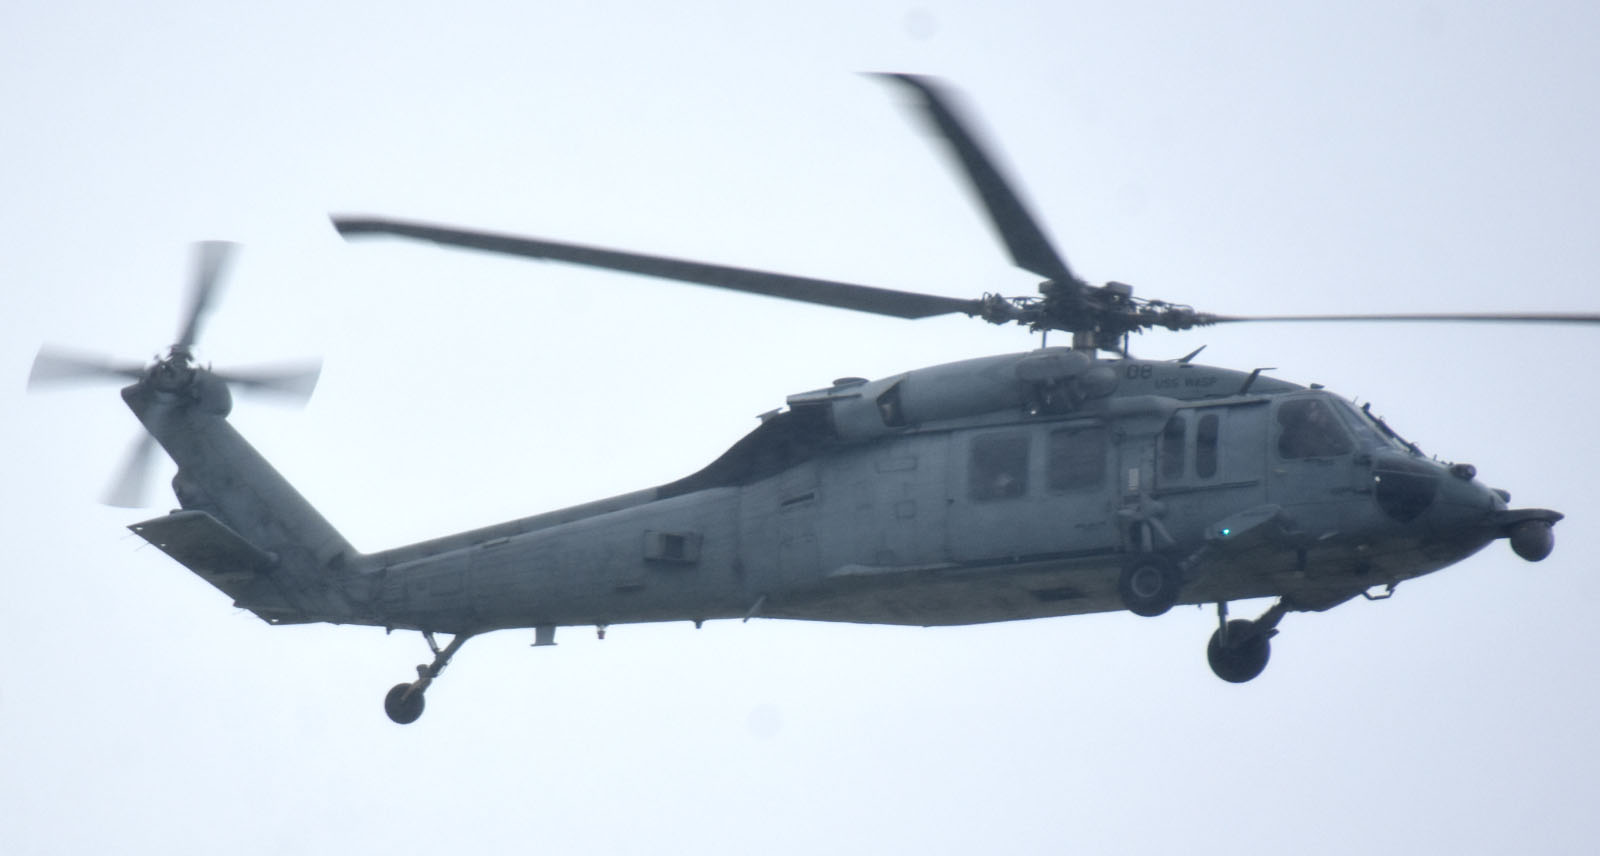 Mh60s180510g449